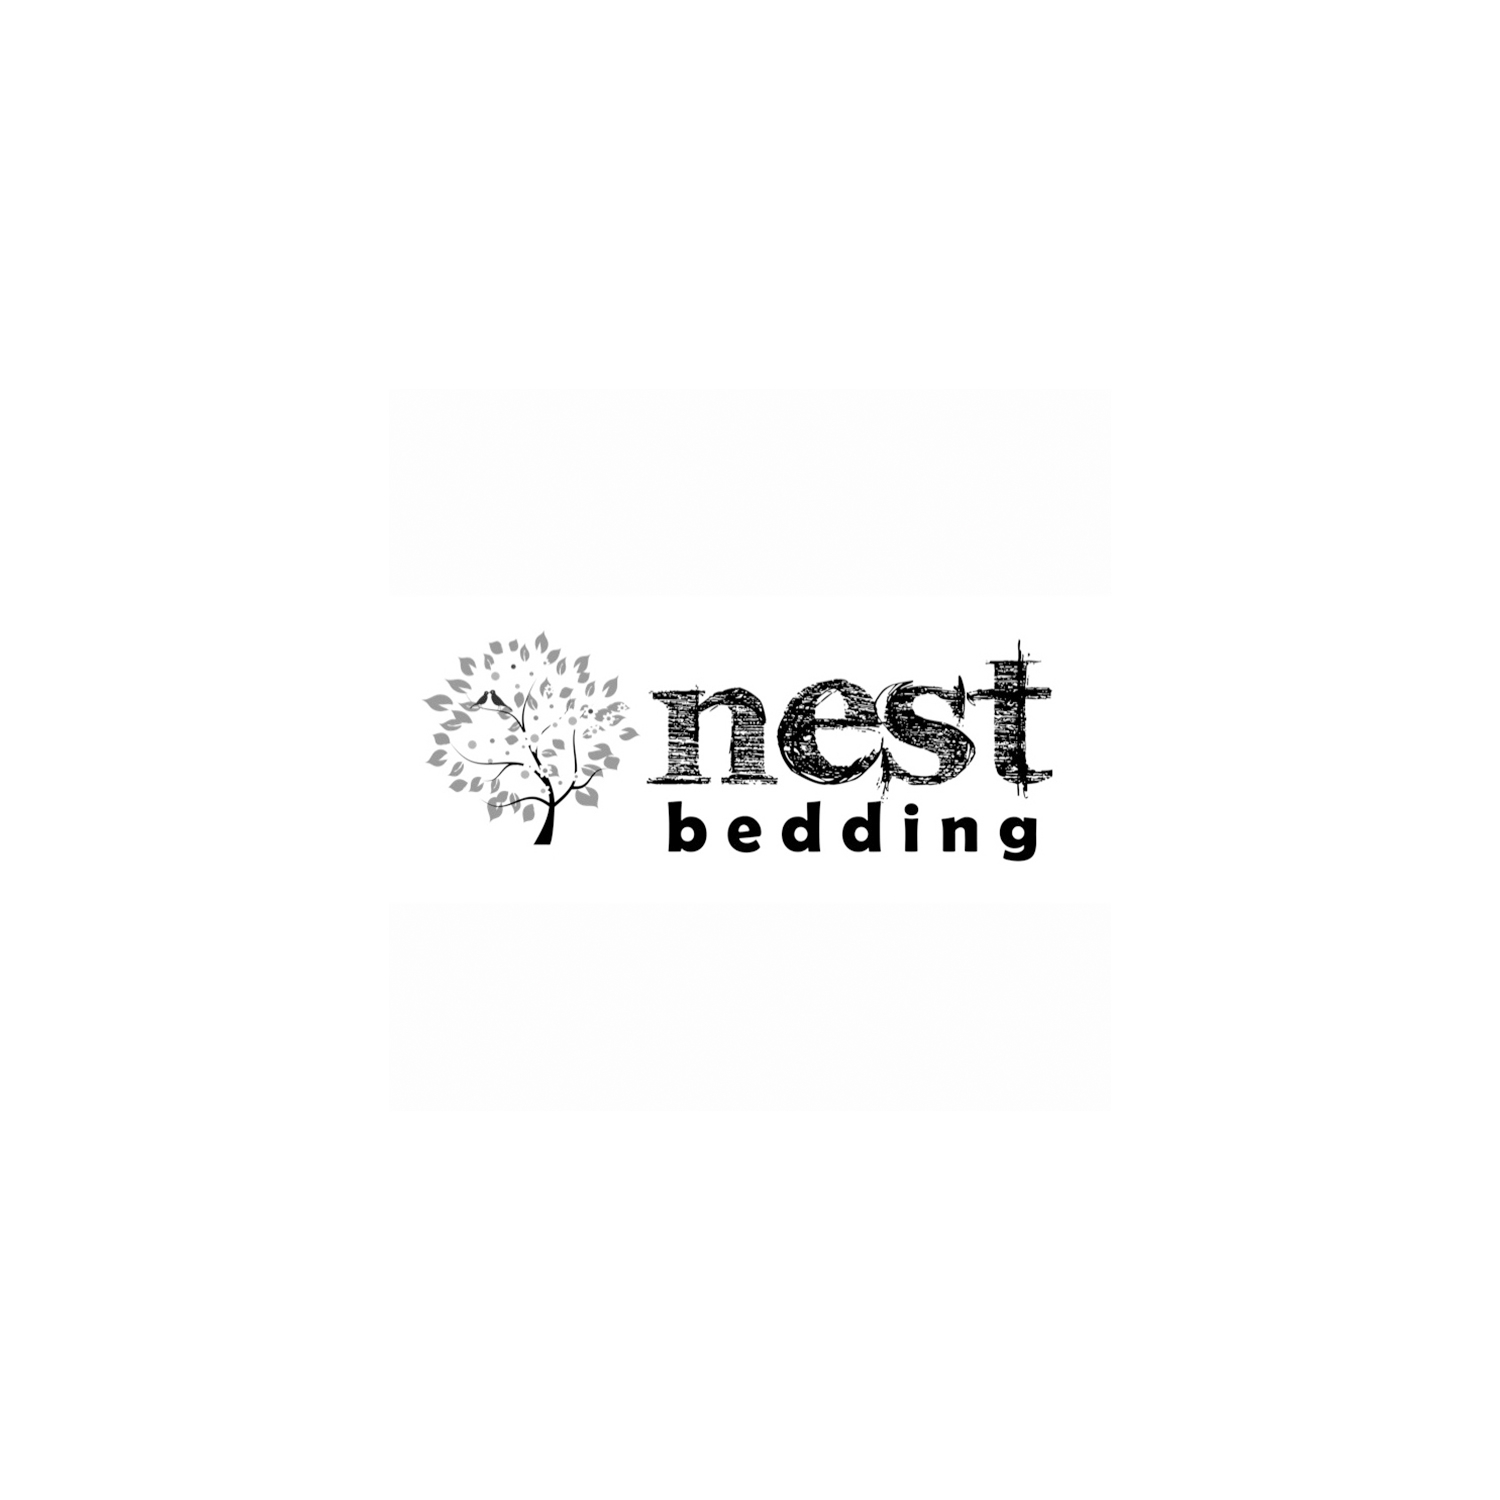 Nest Bedding - Nest Bedding: They make all kinds of bedding and mattresses in beautiful, soft, natural fabrics